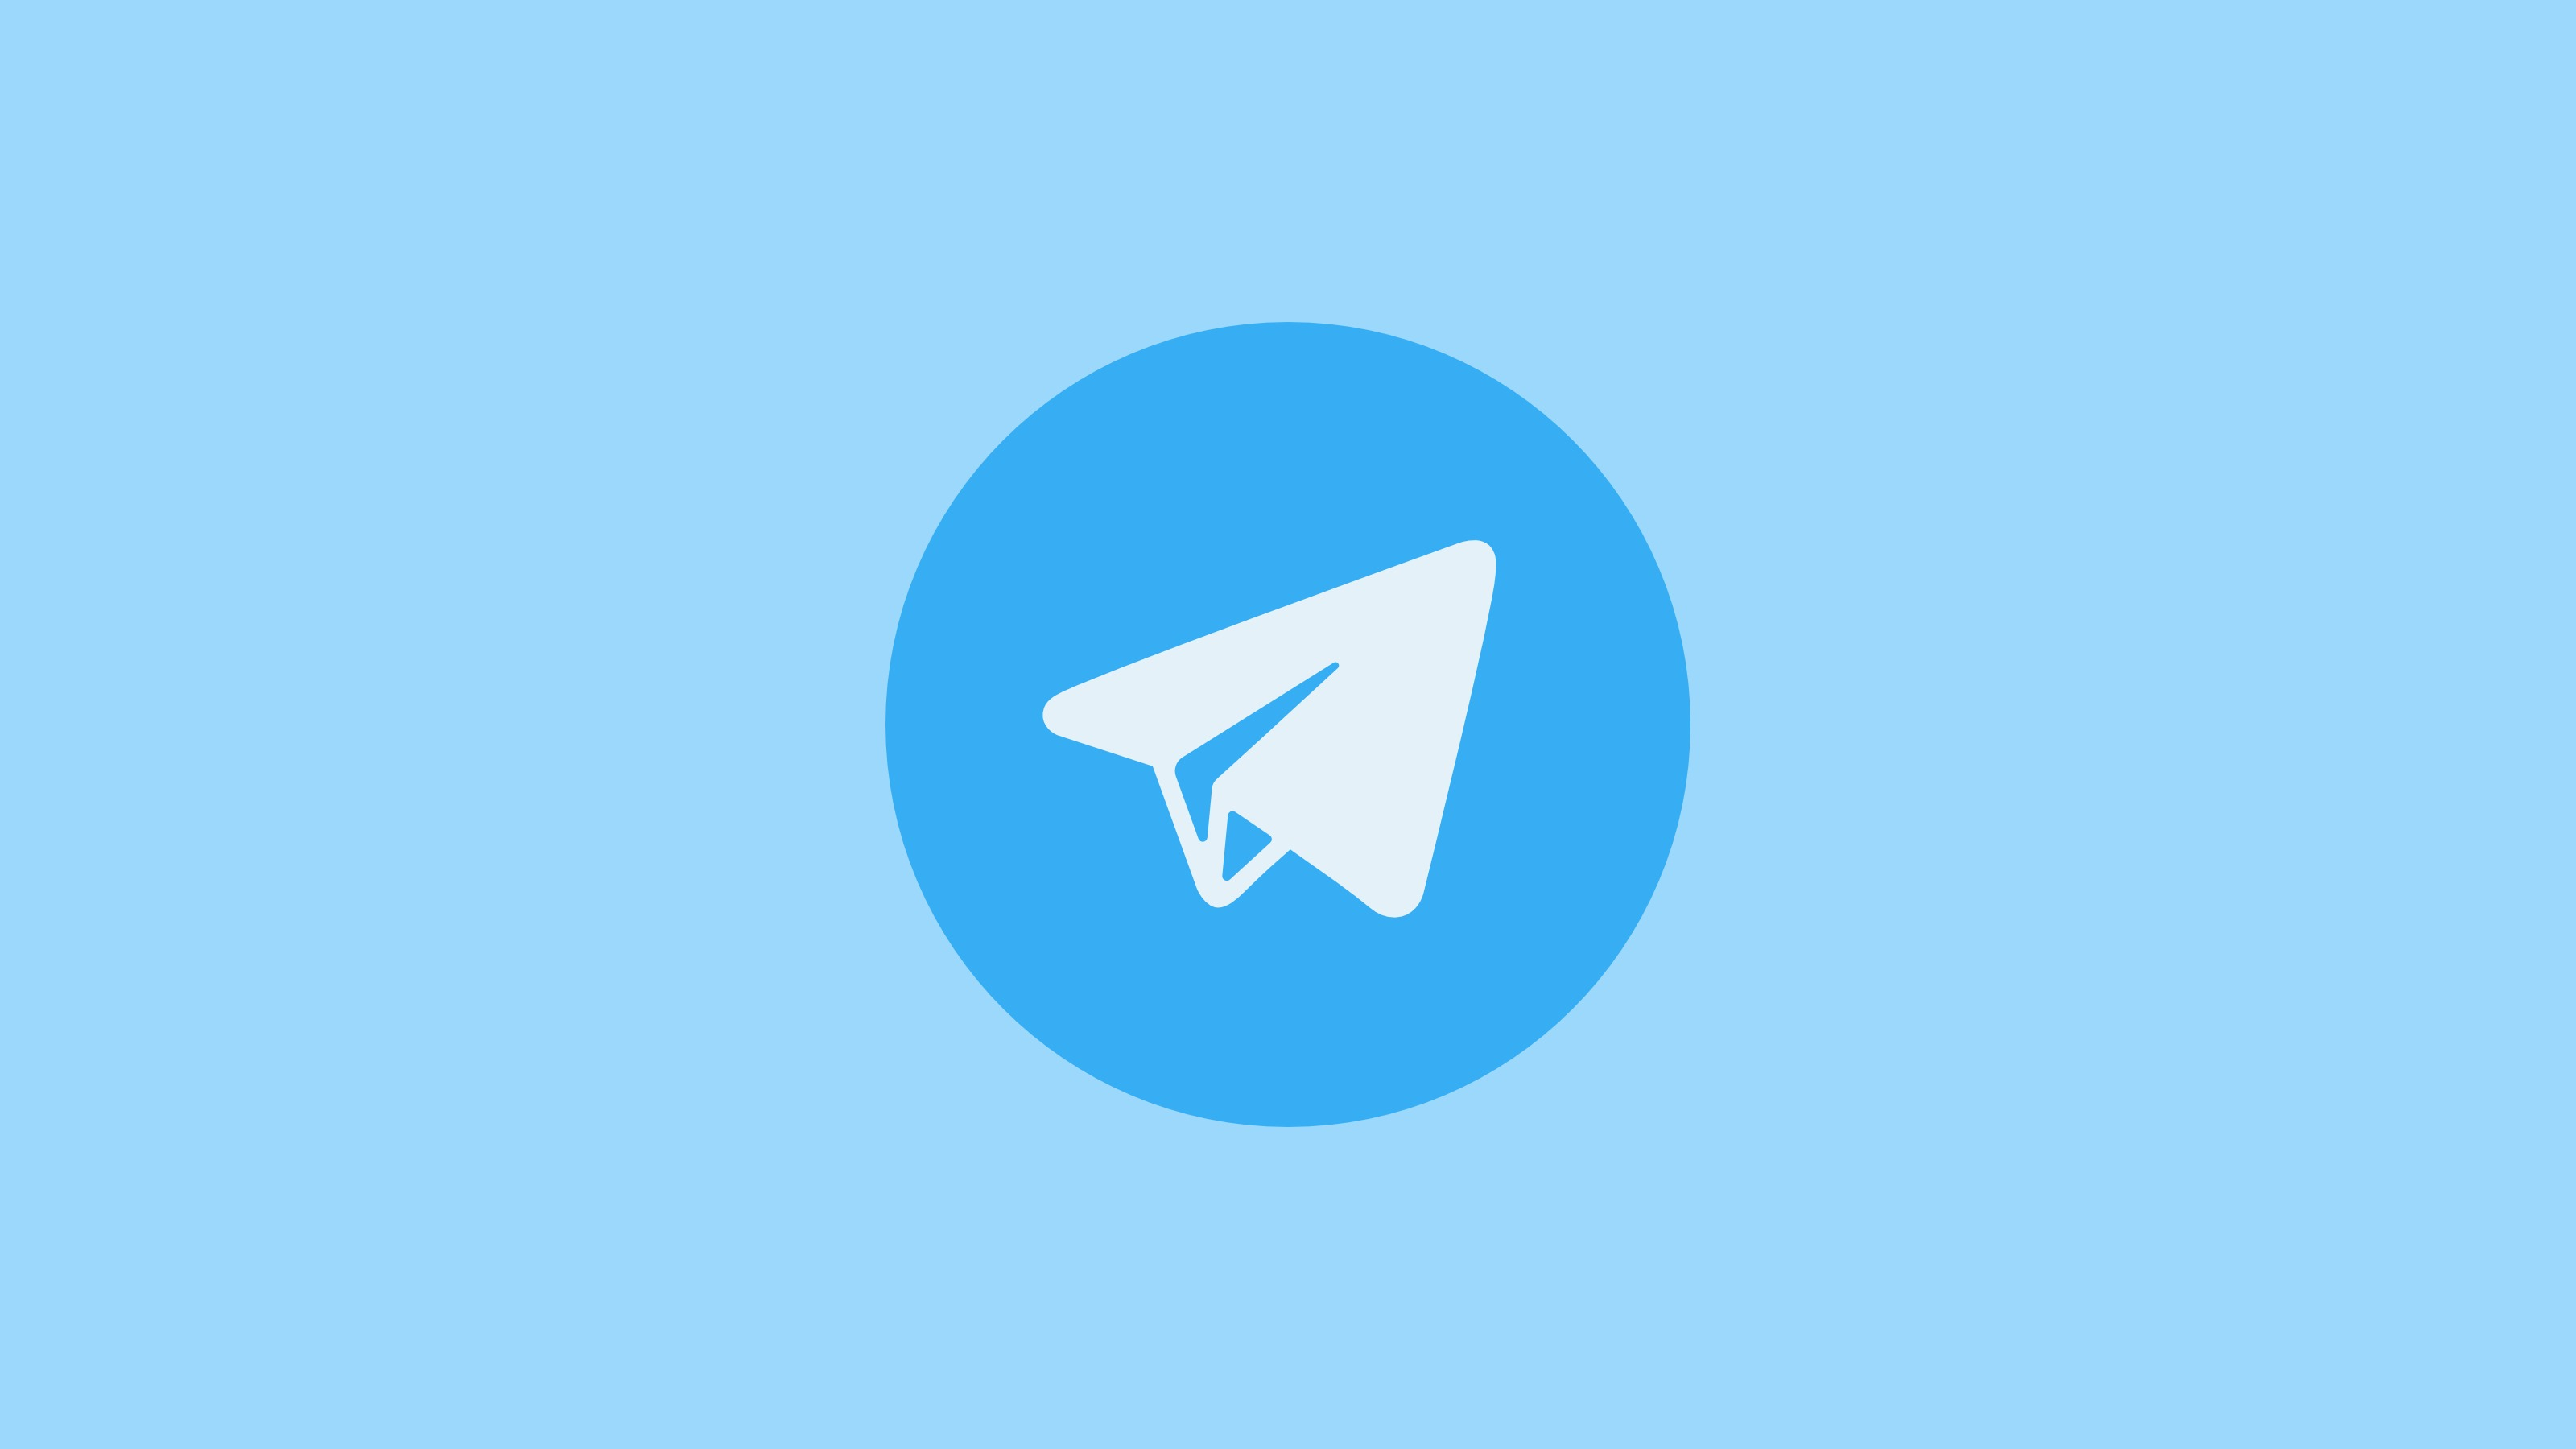 Telegram nears 500 million active users; will begin to monetise in 2021